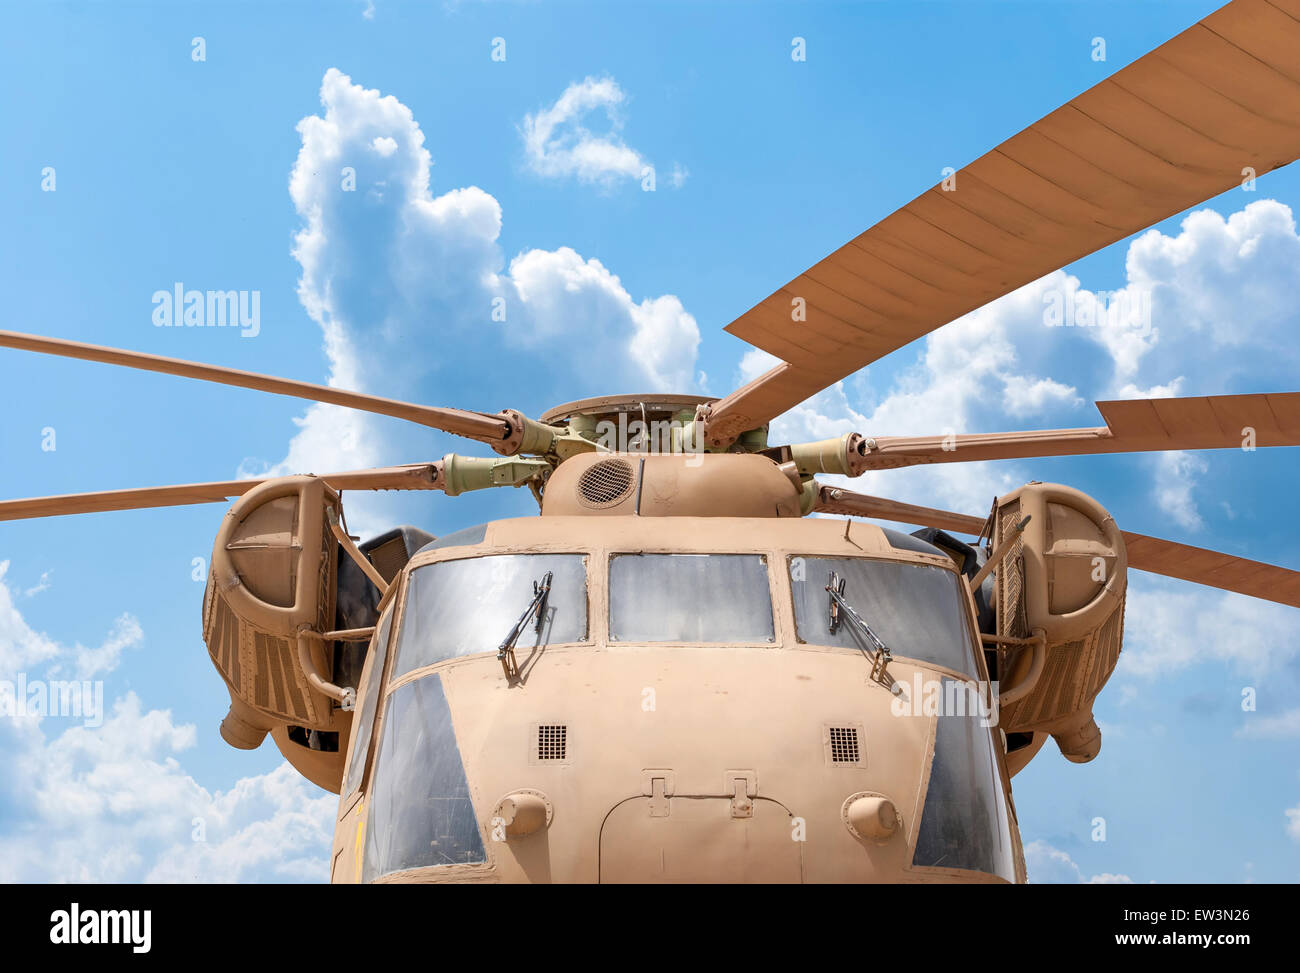 Details of the rotor and part of the body of modern military helicopters closeup - Stock Image